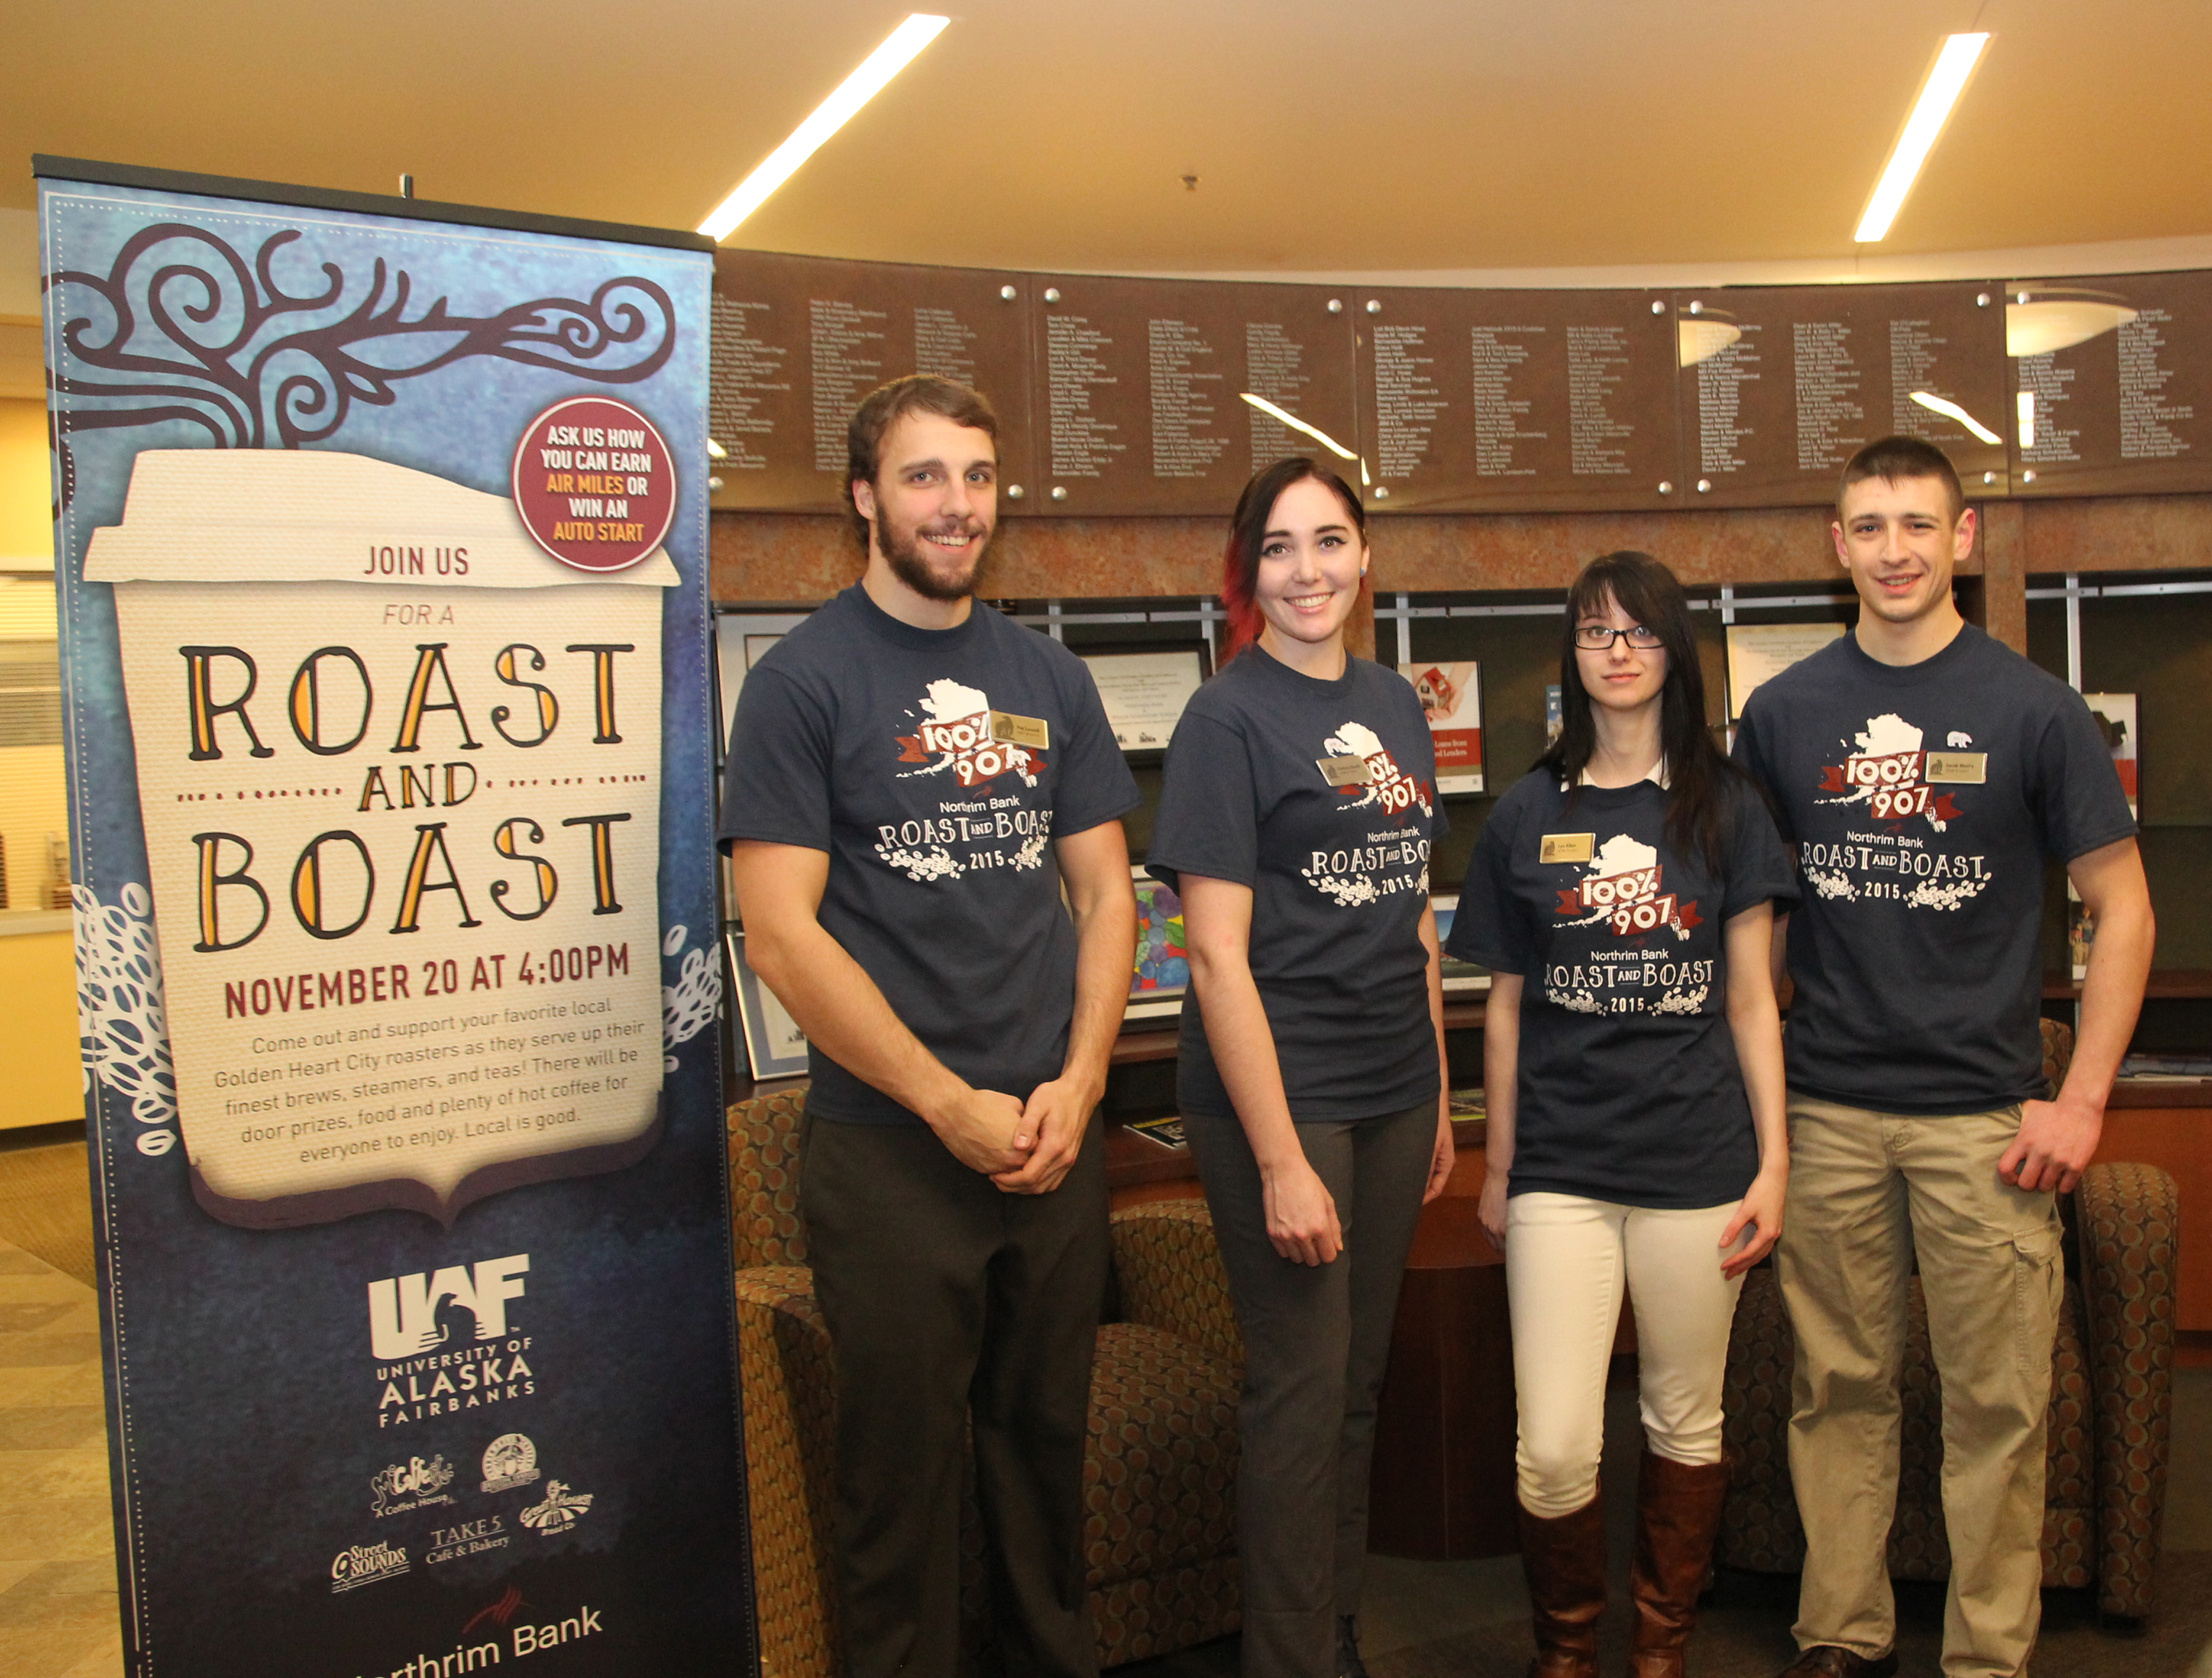 SOM Principles of Marketing students Pat Lassell, Chelsea Roehl, Lyz Allen, and Jake Mooty at Roast and Boast 2015